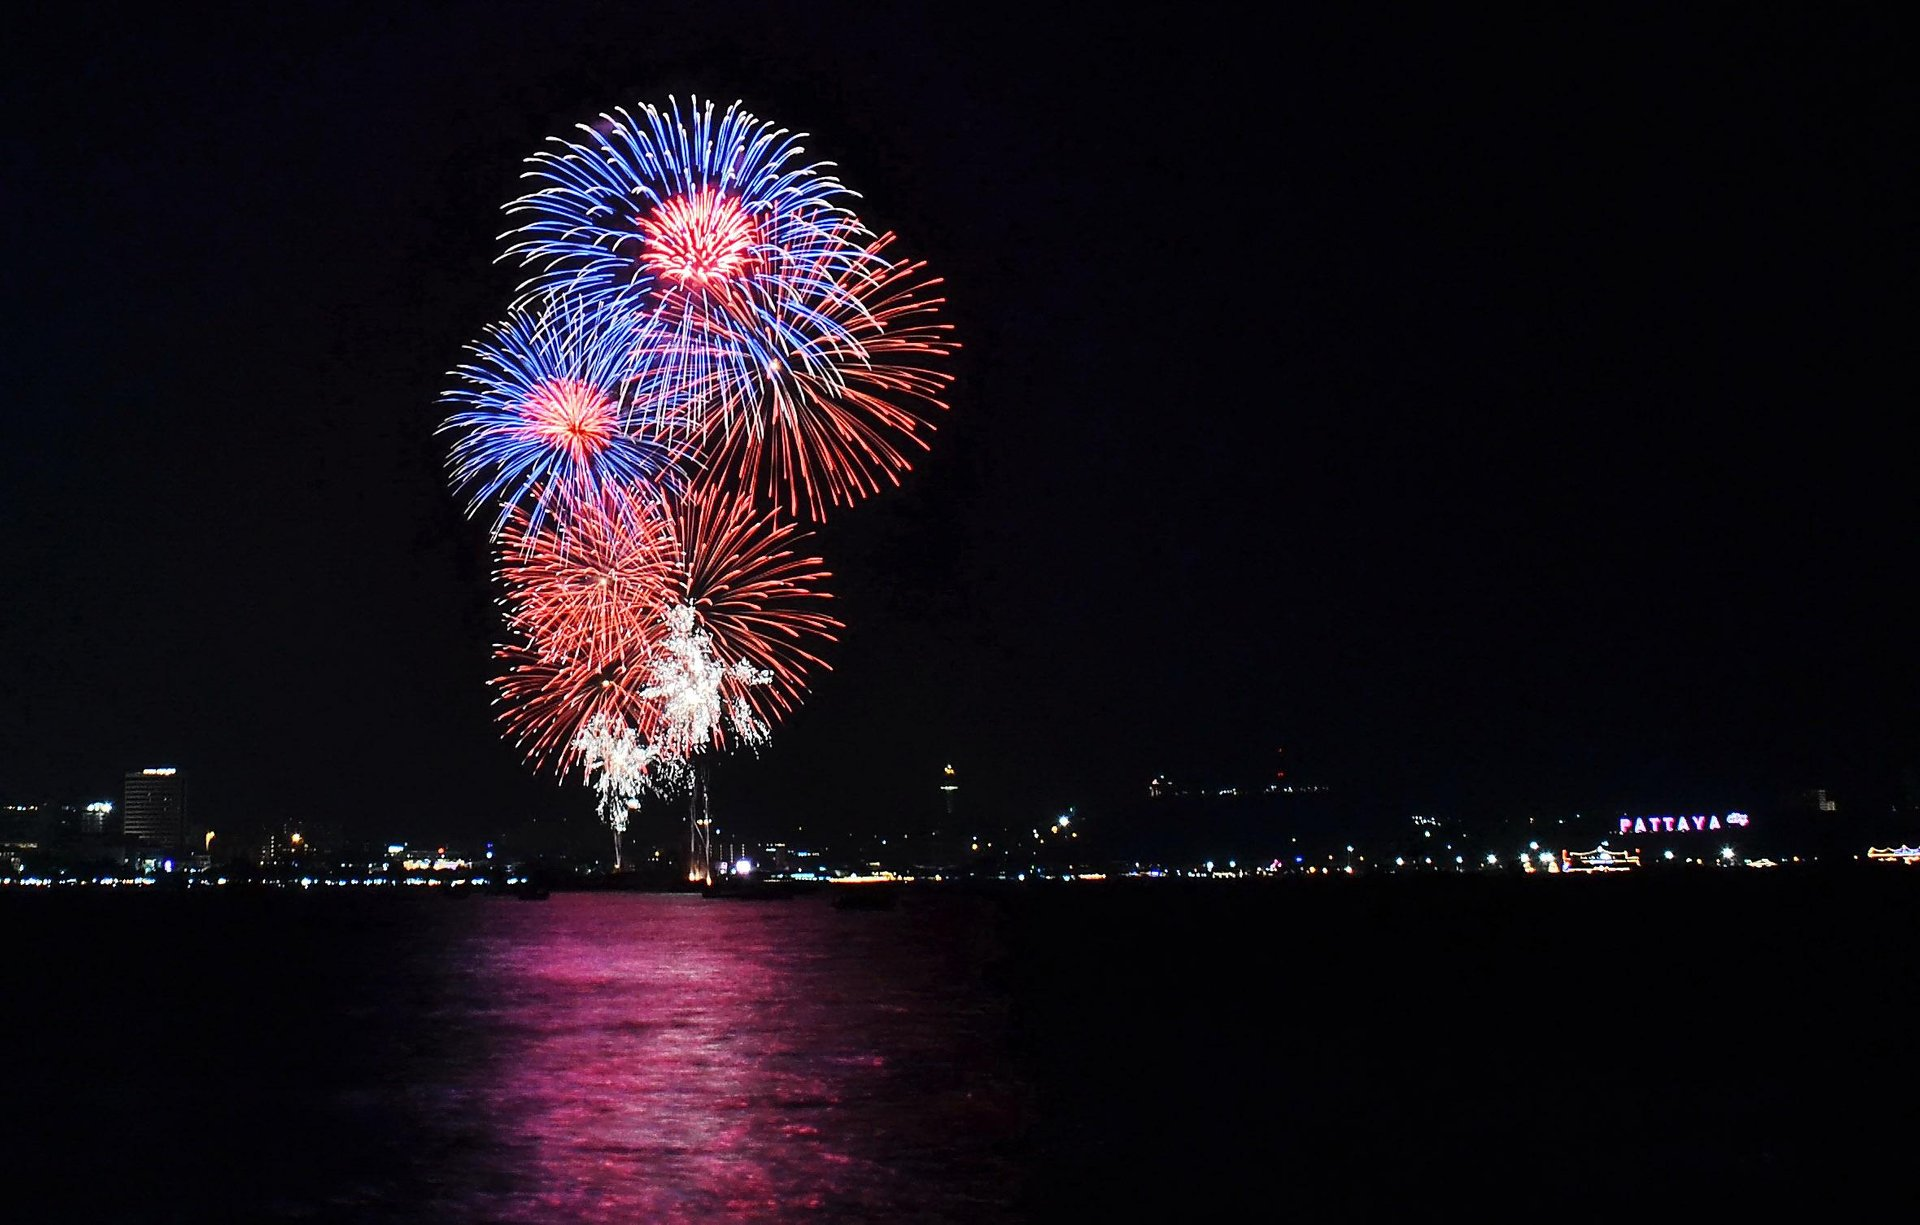 Pattaya International Fireworks Festival in Thailand 2020 - Best Time